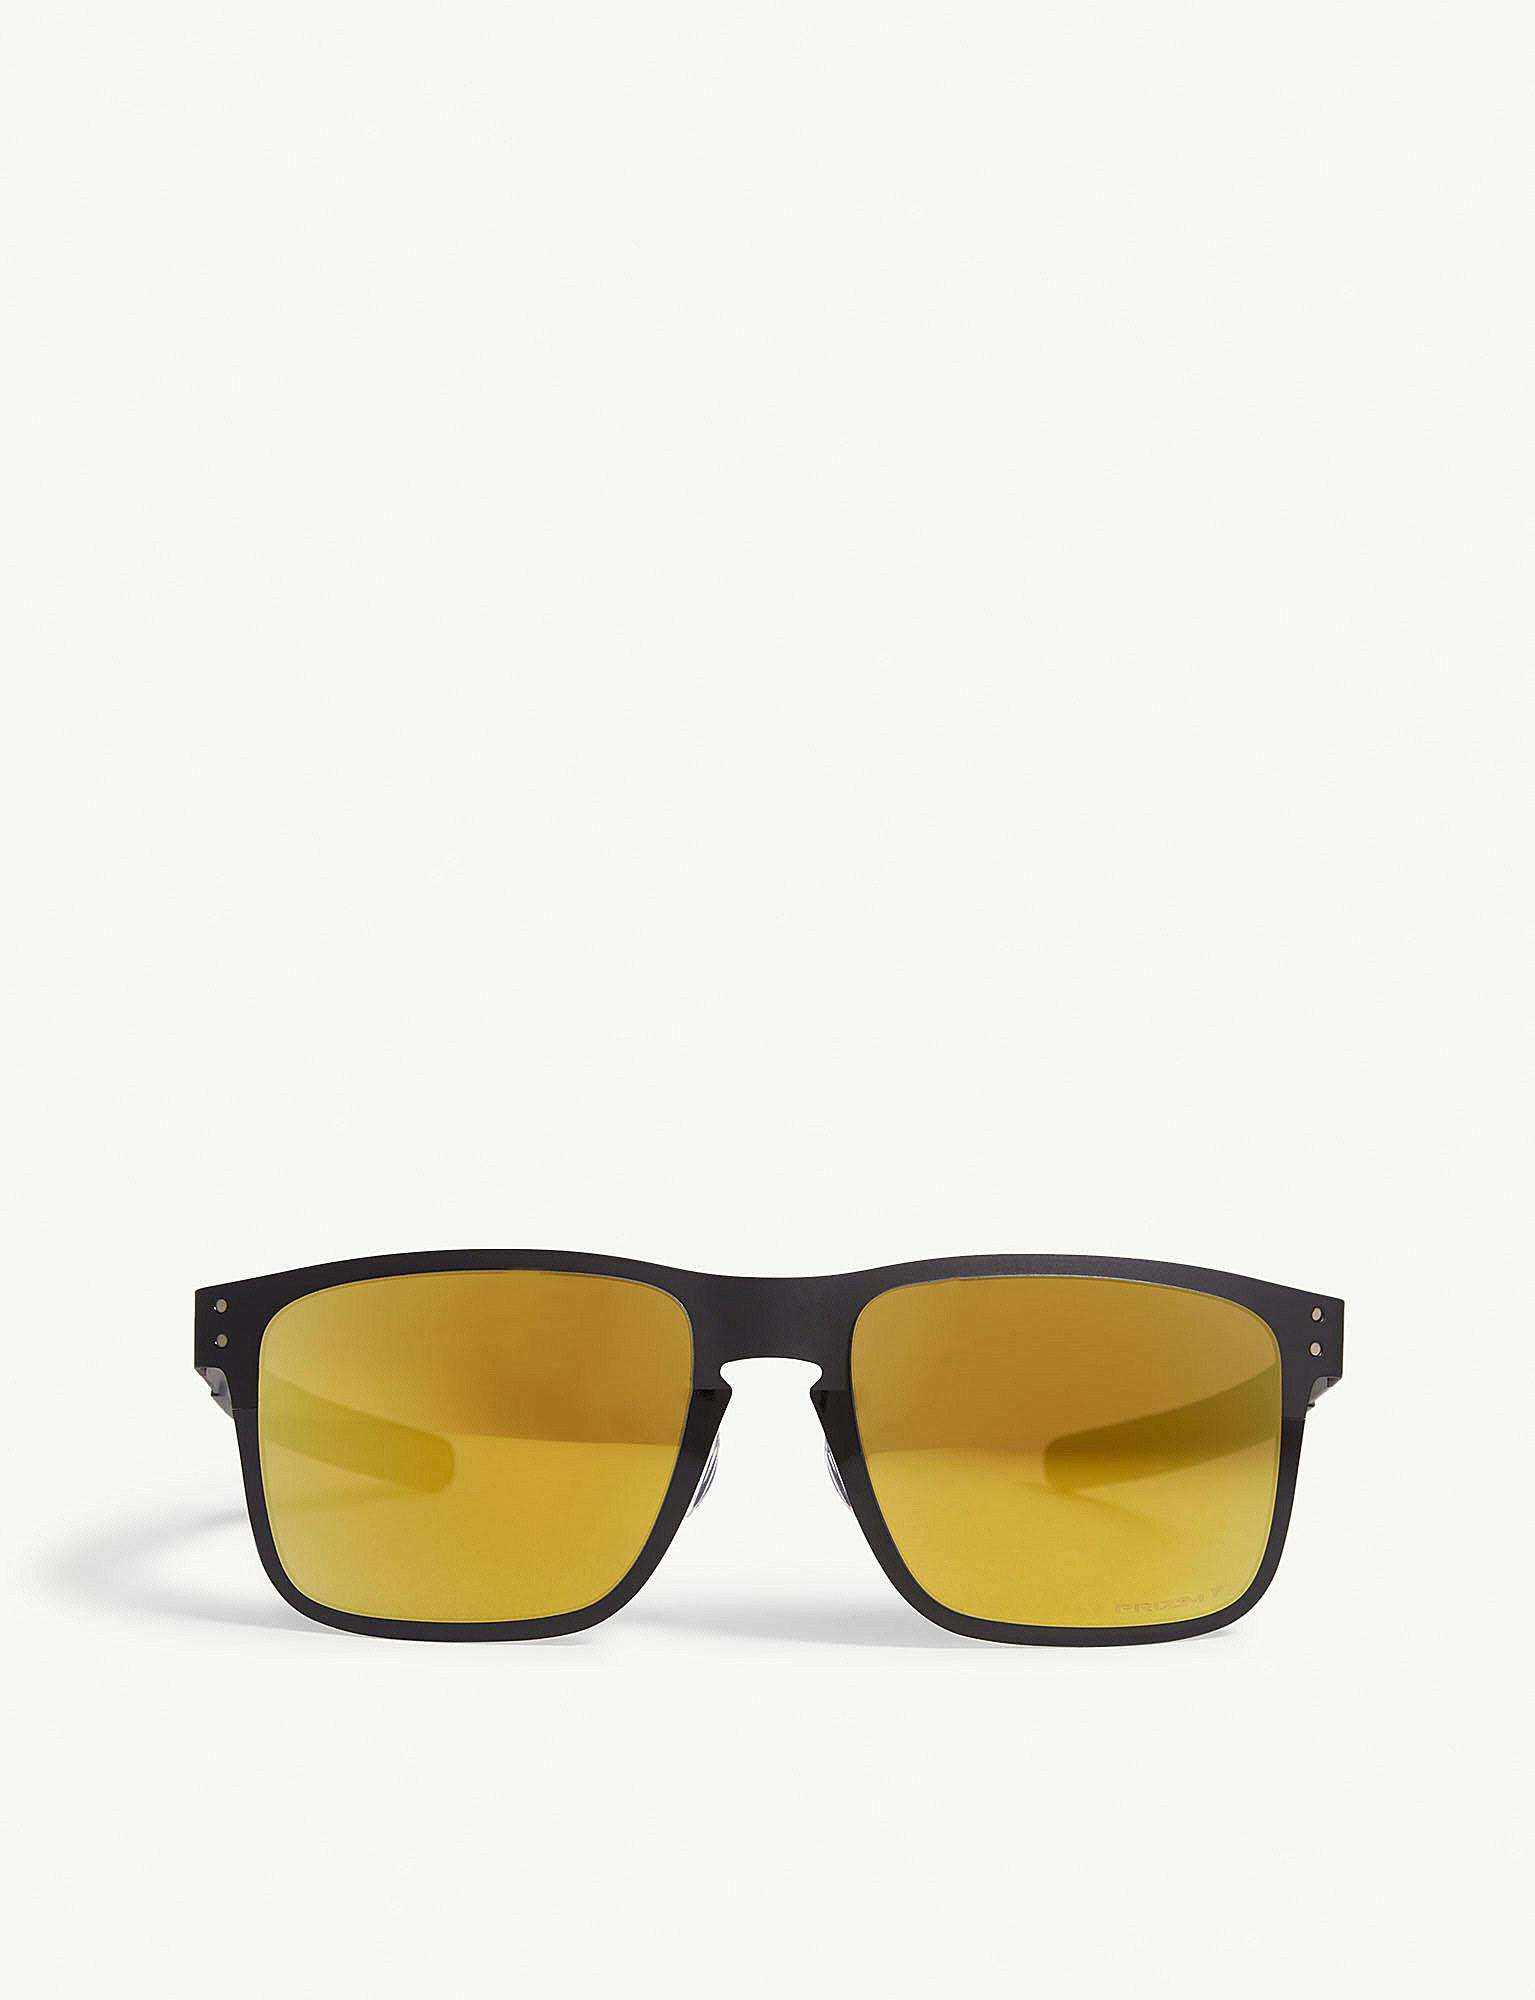 Lyst - Oakley Oo4123-2055 Holbrook Metal Square-frame Sunglasses in ...